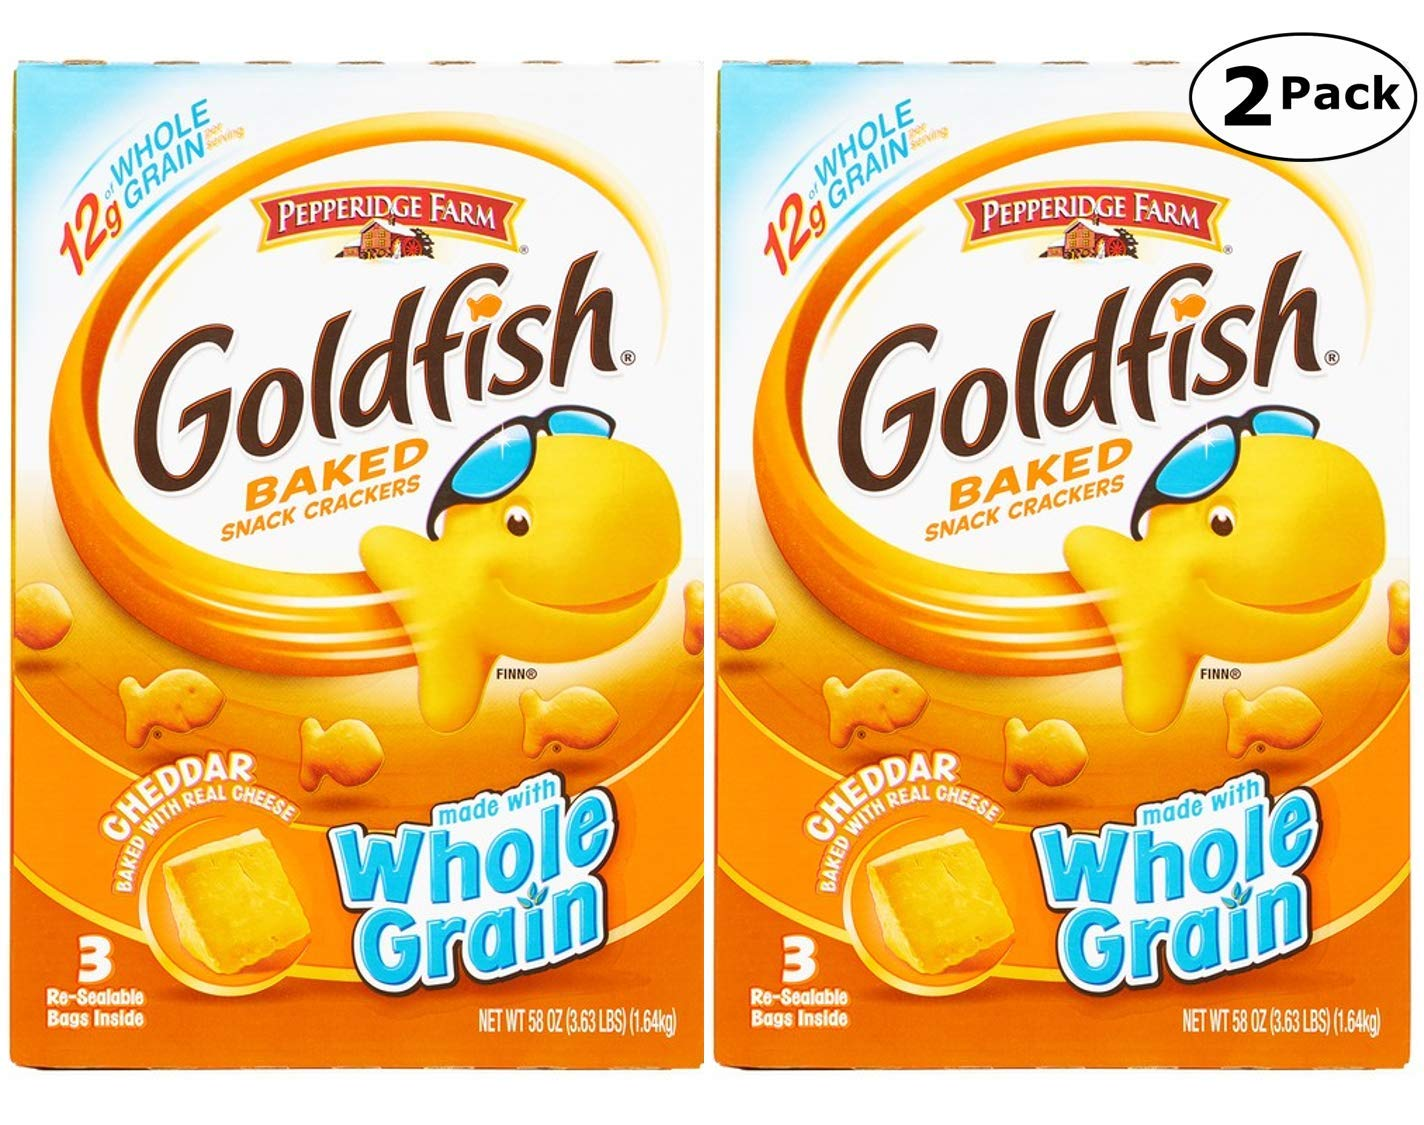 Pepperidge Farm Goldfish, Baked with Real Cheese Snack Crackers, Cheddar Flavor - 3.62 LB x 2 Pack - Total 7.24 LB